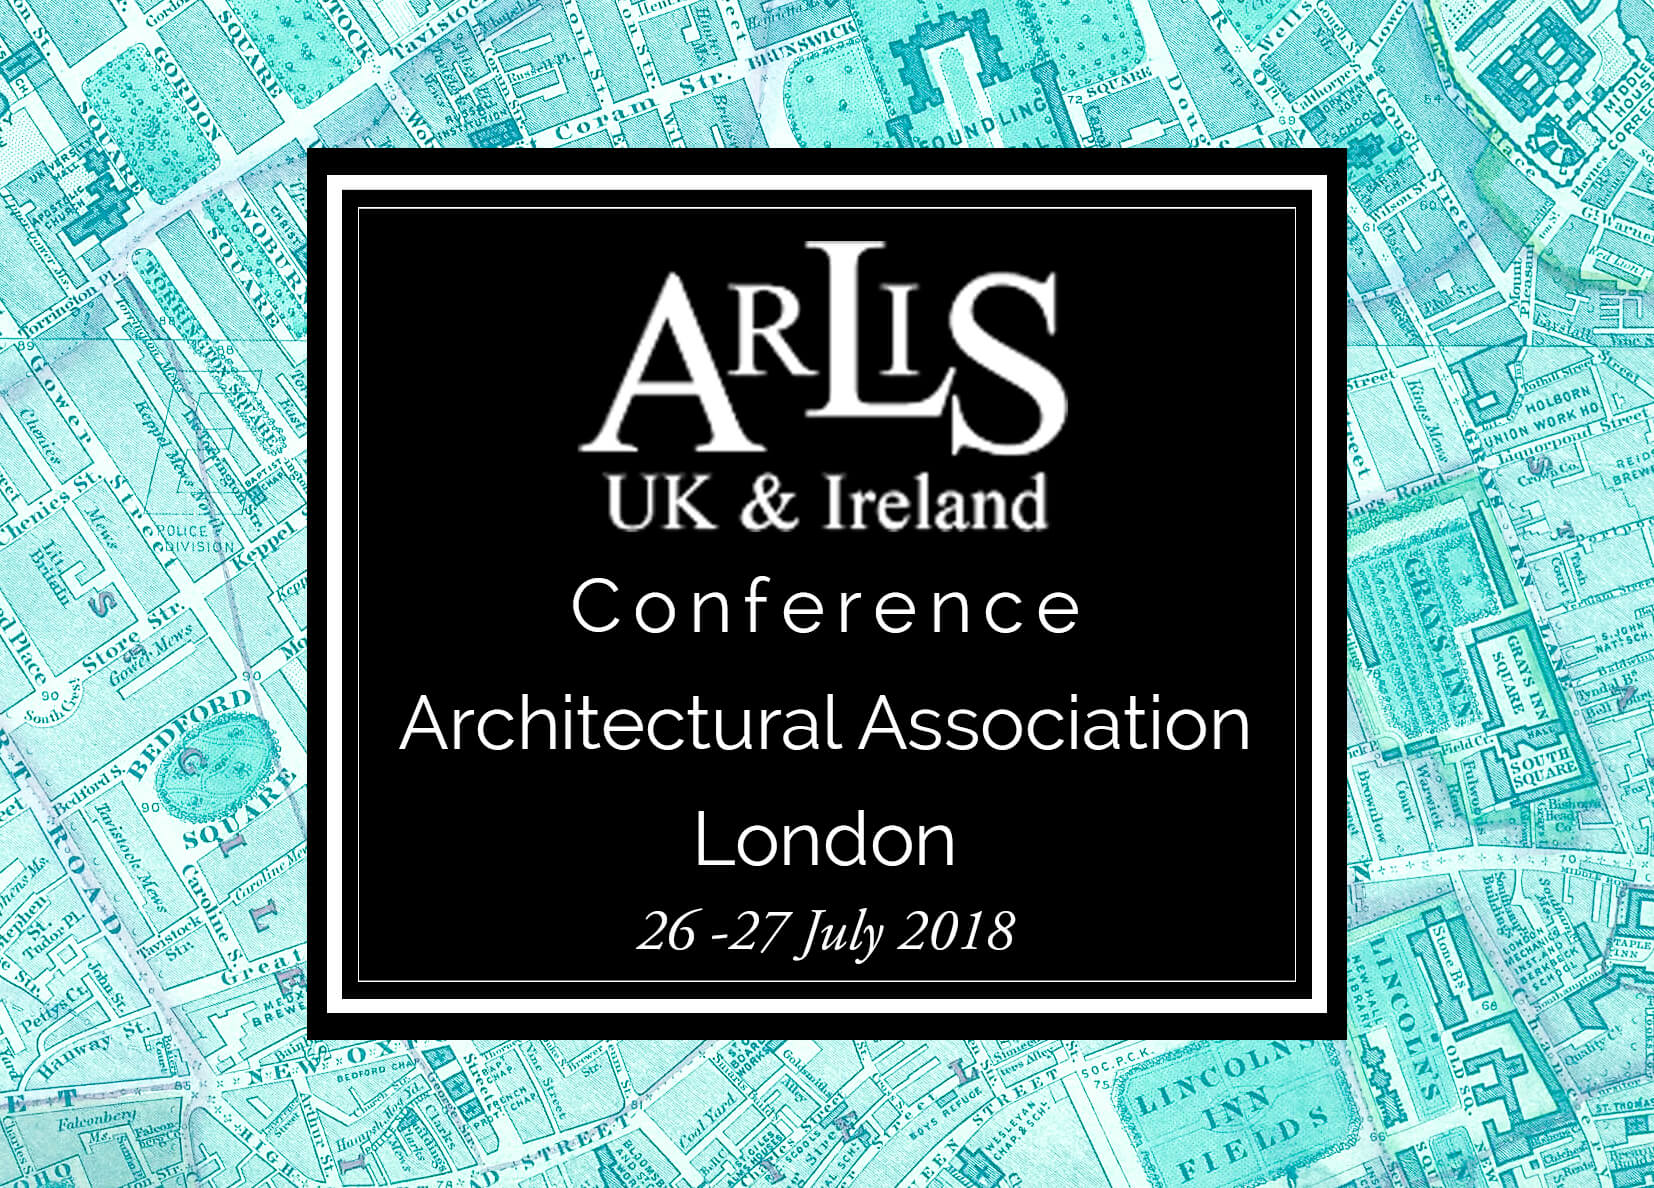 ARLIS London w dates logo and venue